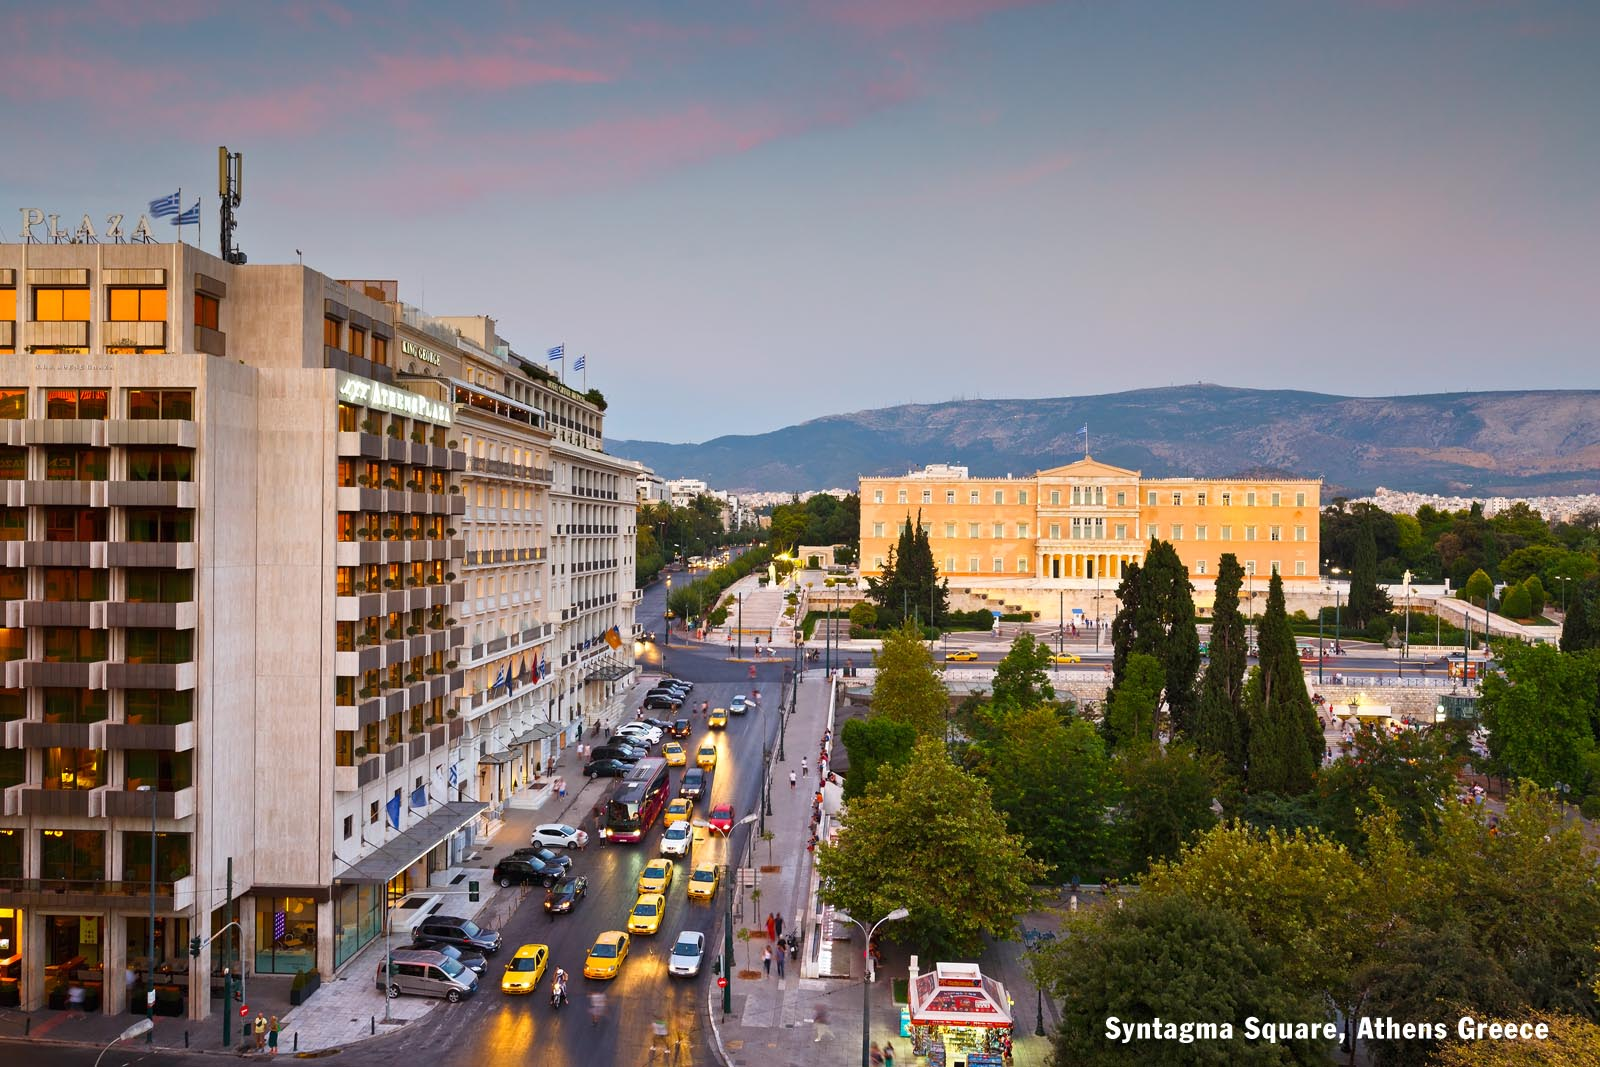 Enlarged - Syntagma Square AthensGreece with Hymettus in background